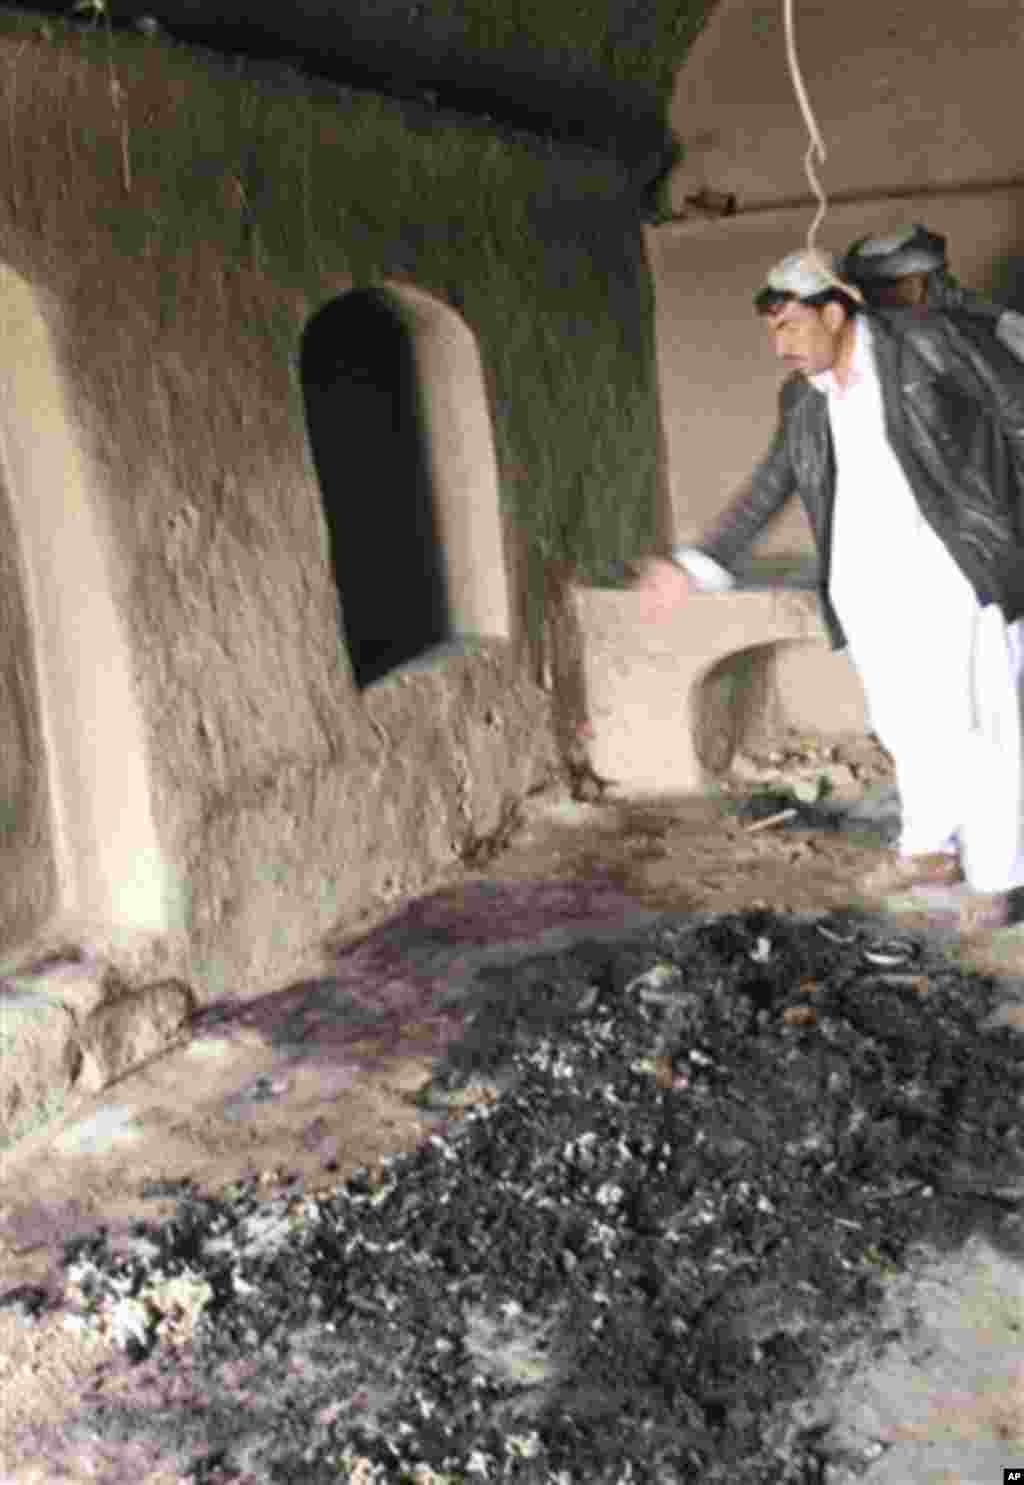 A man points to bloodstains, where witnesses say Afghans were killed by a U.S. service member, in Panjwai, Kandahar province south of Kabul, Afghanistan, Sunday, March 11, 2012. A U.S. service member walked out of a base in southern Afghanistan before daw